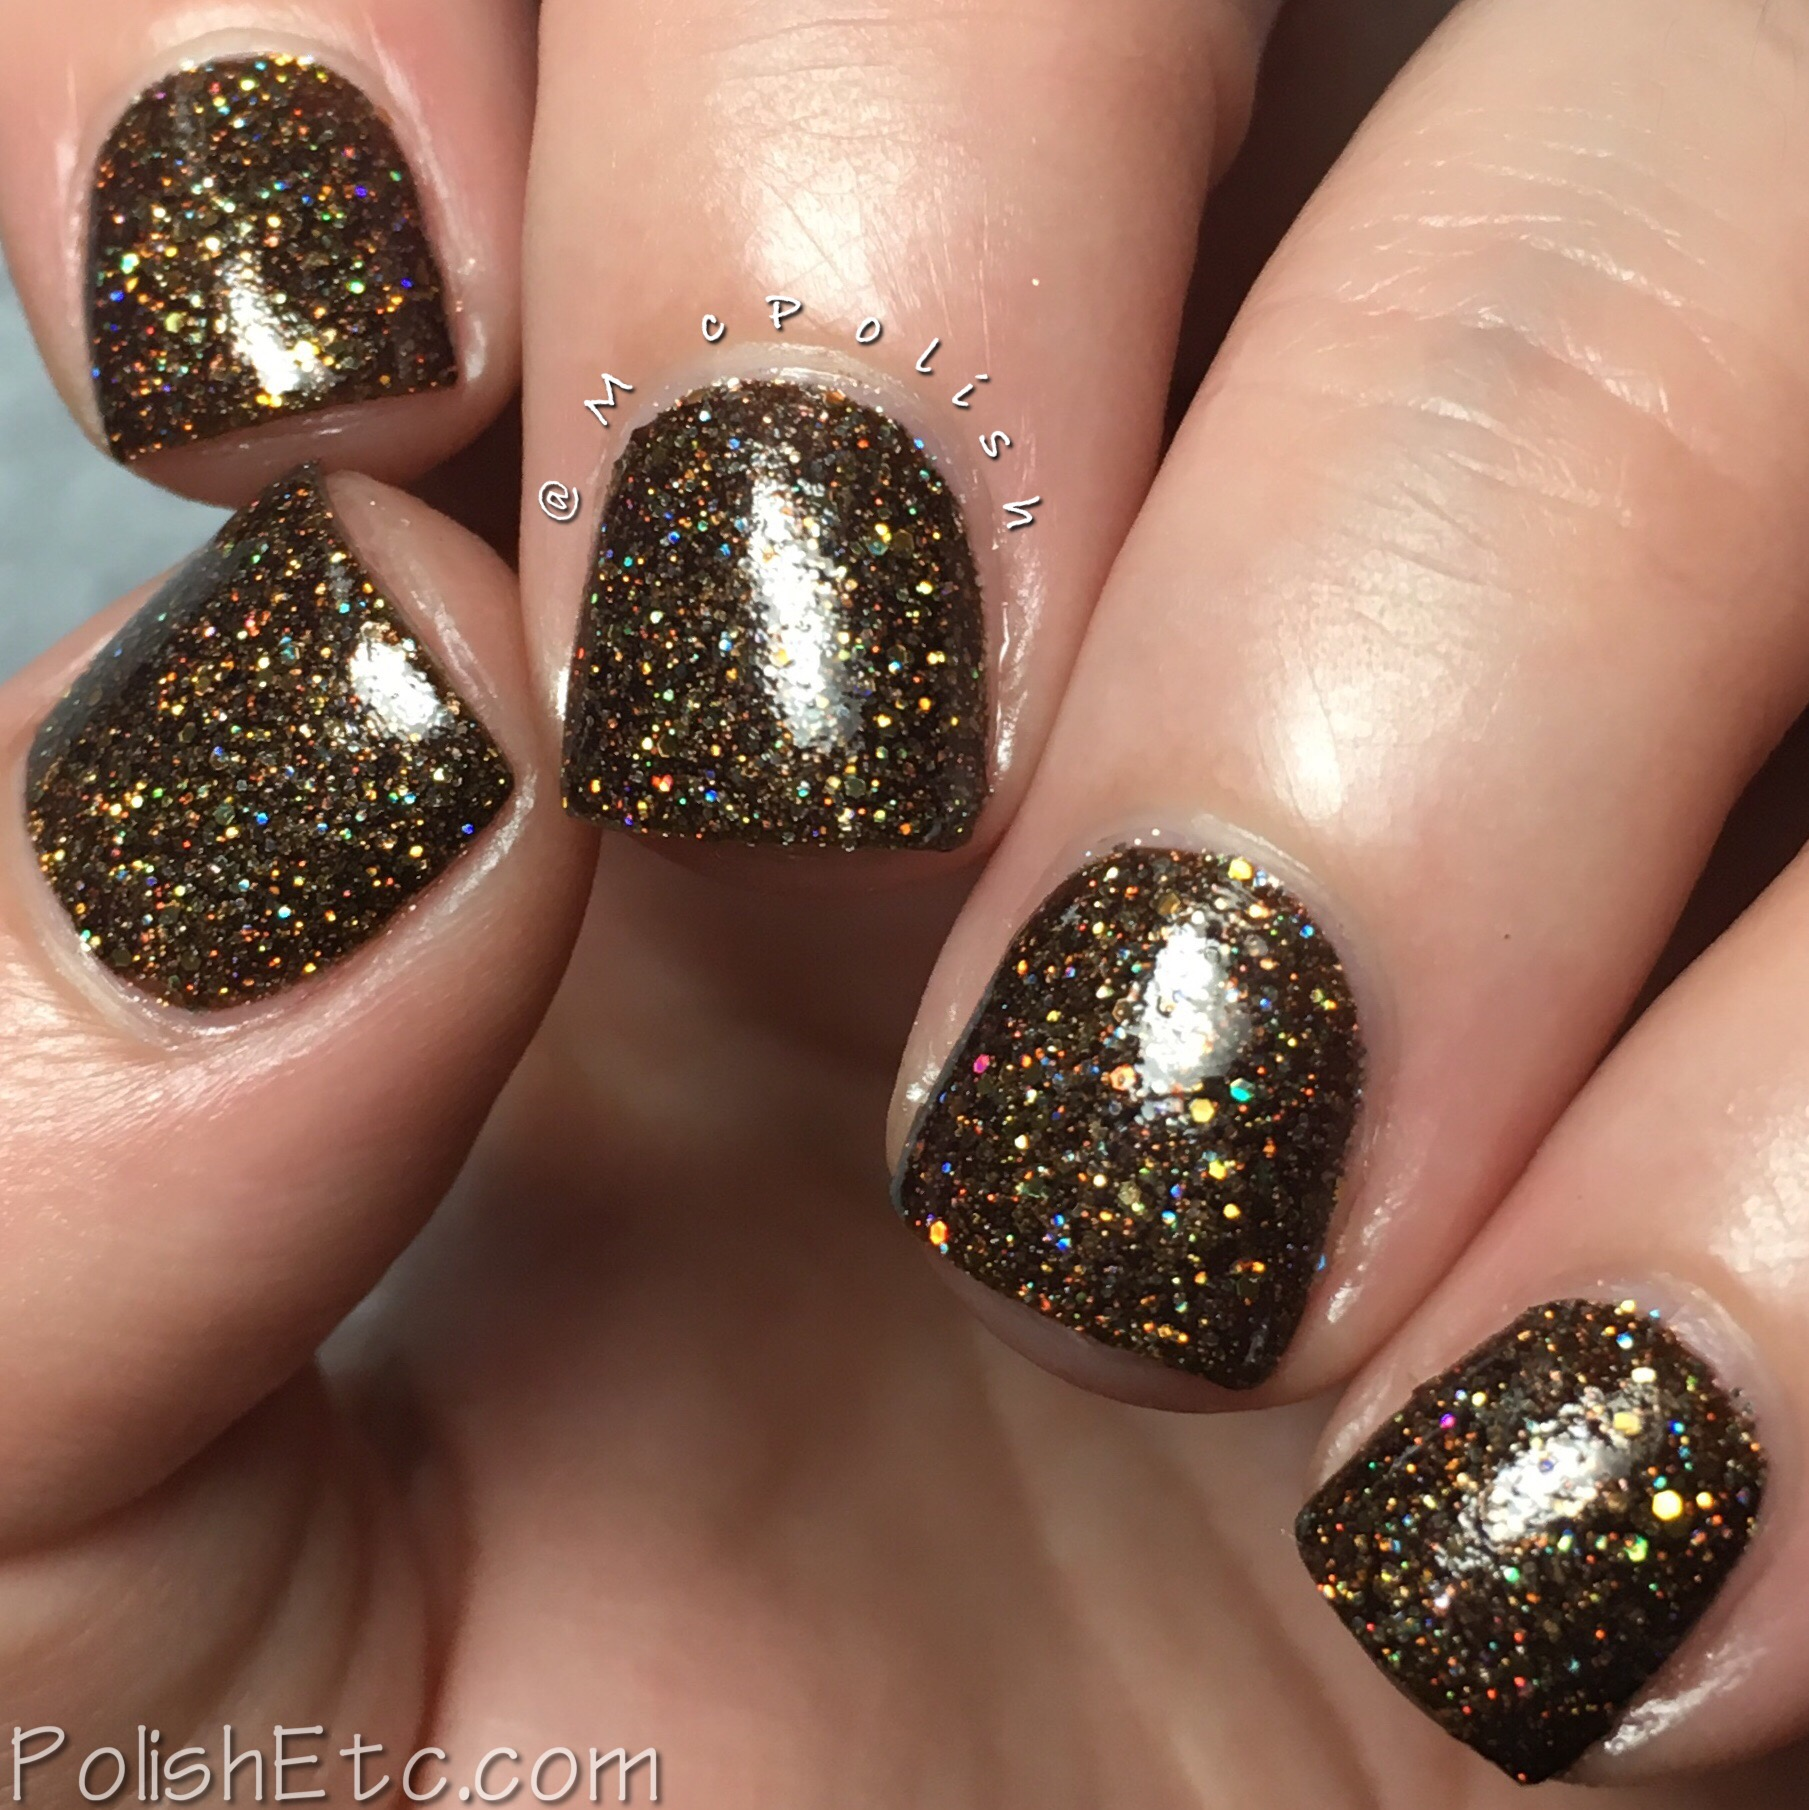 KBShimmer Espresso Yourself Holographic Nail Polish